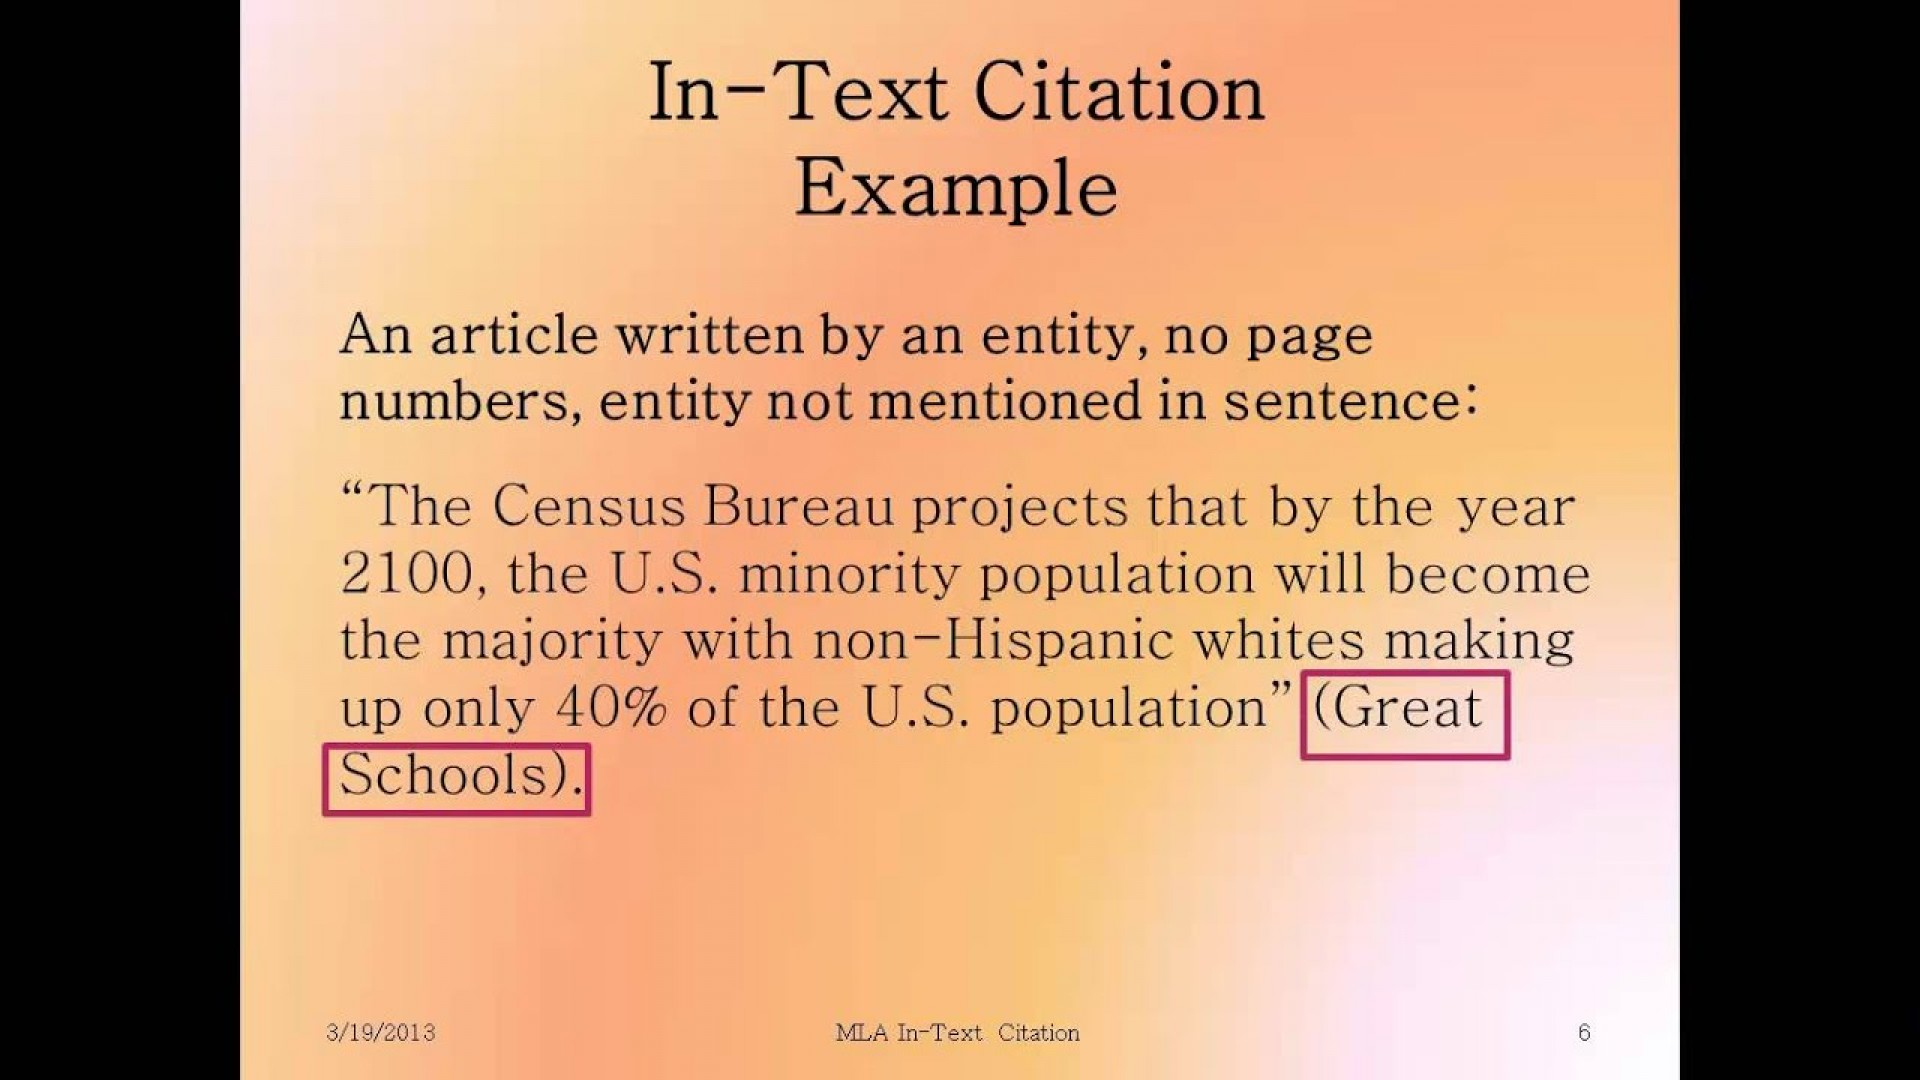 011 How To Cite Articles In Essay Maxresdefault Singular A Quote From An Internet Article Scholarly Text Mla Journal Paper Apa 1920